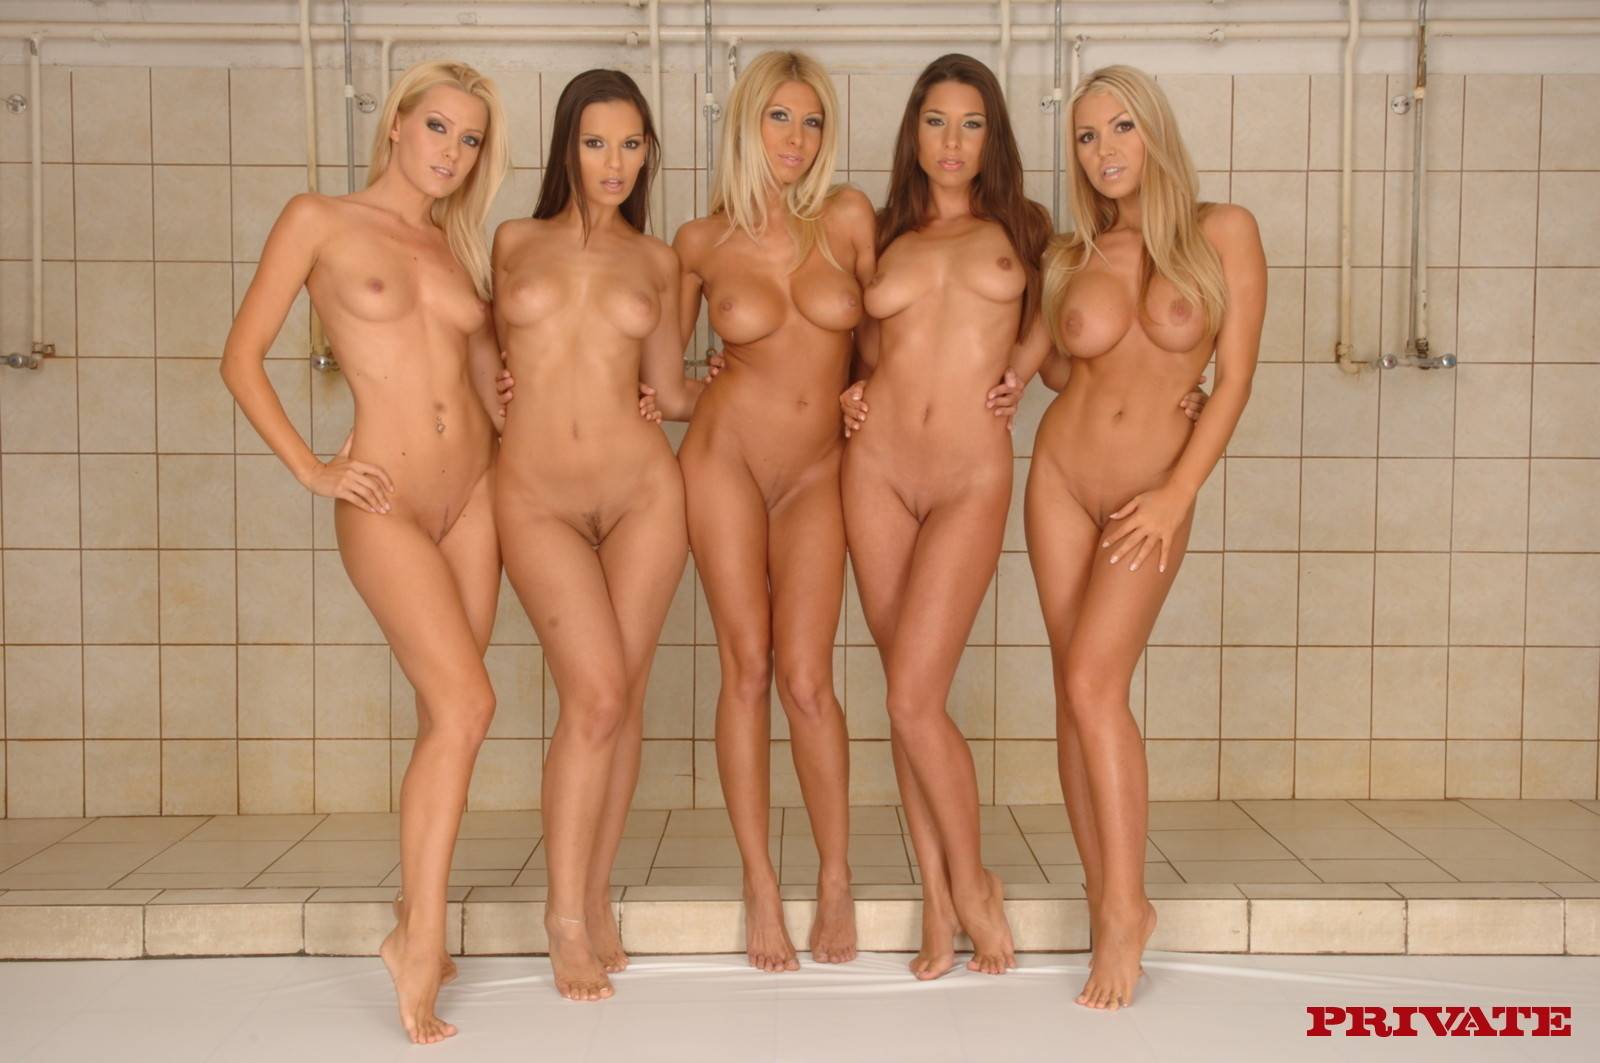 naked-girls-in-group-mix-vol3-21